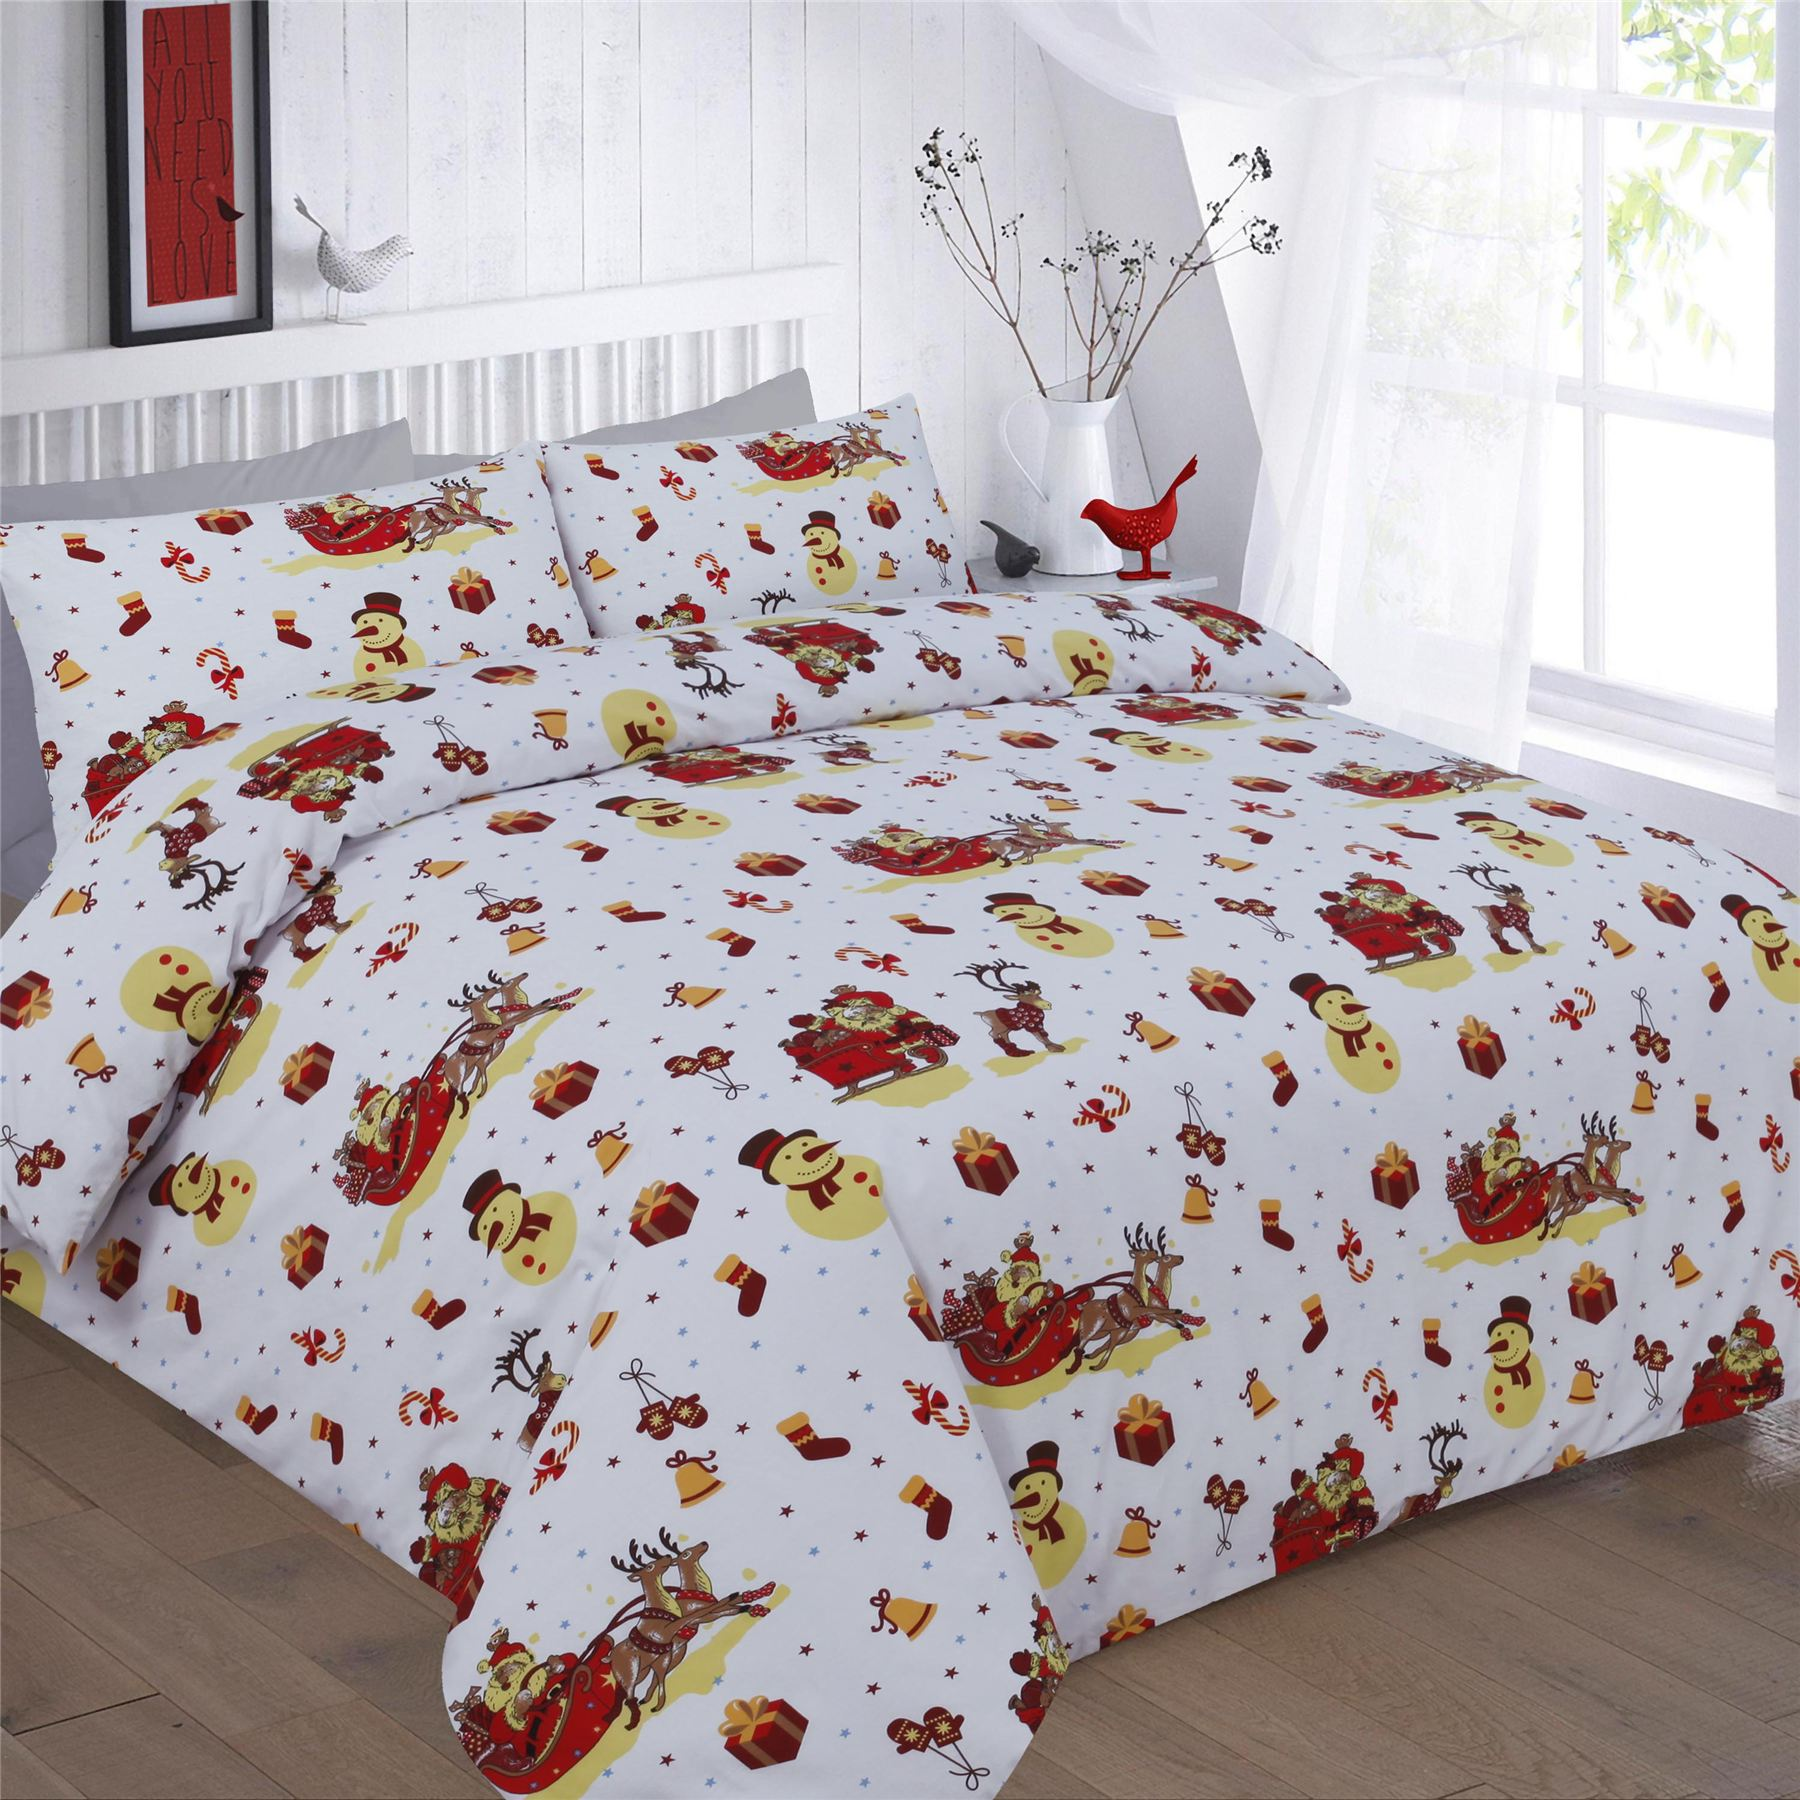 Double Doona Covers Xmas Duvet Cover With Pillow Case Novelty Reindeer